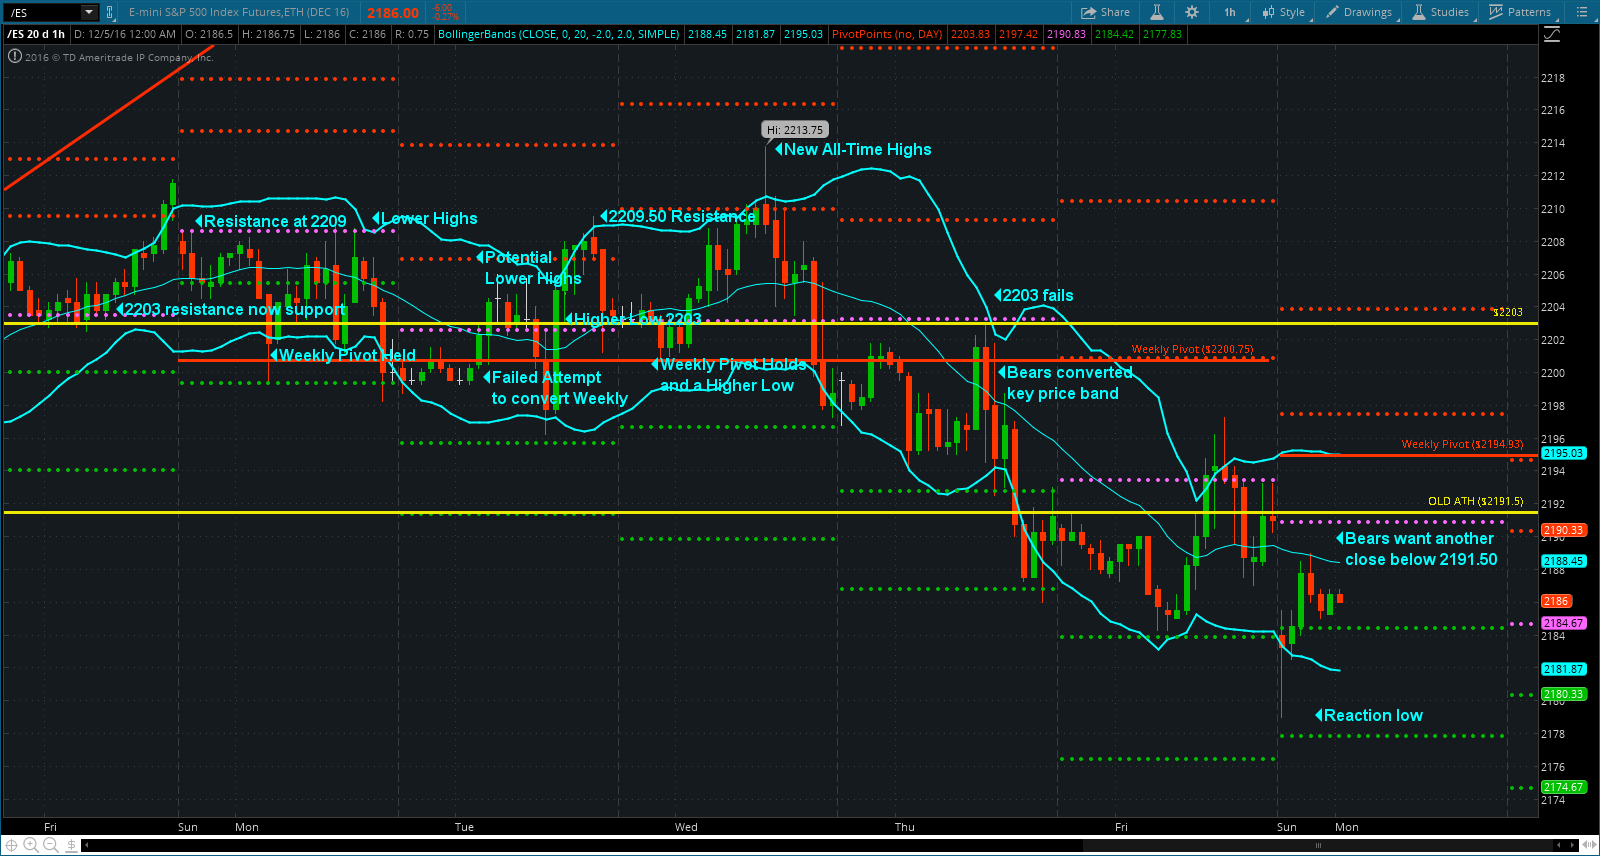 Here you can see the reaction low at the daily mid-band and s2. Bears cannot allow that to be the week's low. You can weekly pivot above at 2195. That area coupled with 2191.50 represent the key price band for the week similar to 2203-2200.75 last week.